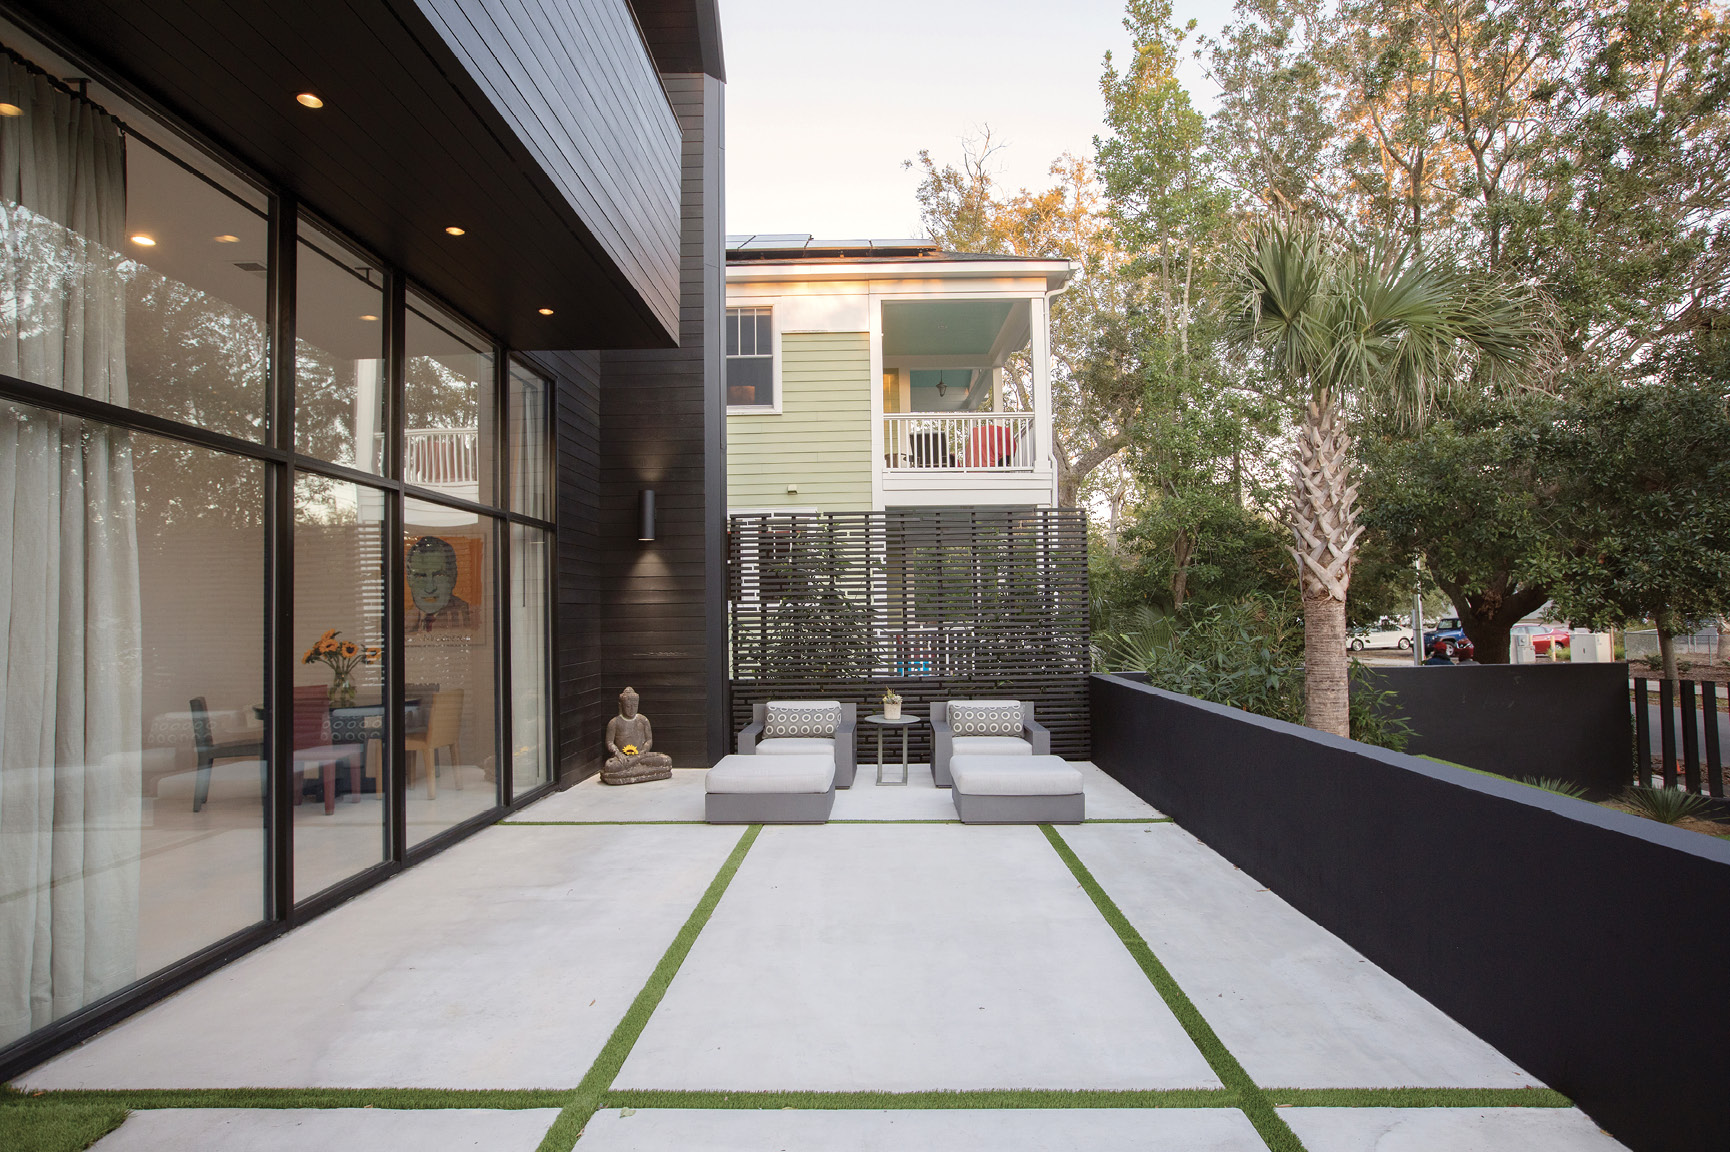 The front terrace strikes a contrast with the traditional porch behind it. Artificial turf between large concrete pavers soften the space, adorned by two Restoration Hardware lounge chairs.